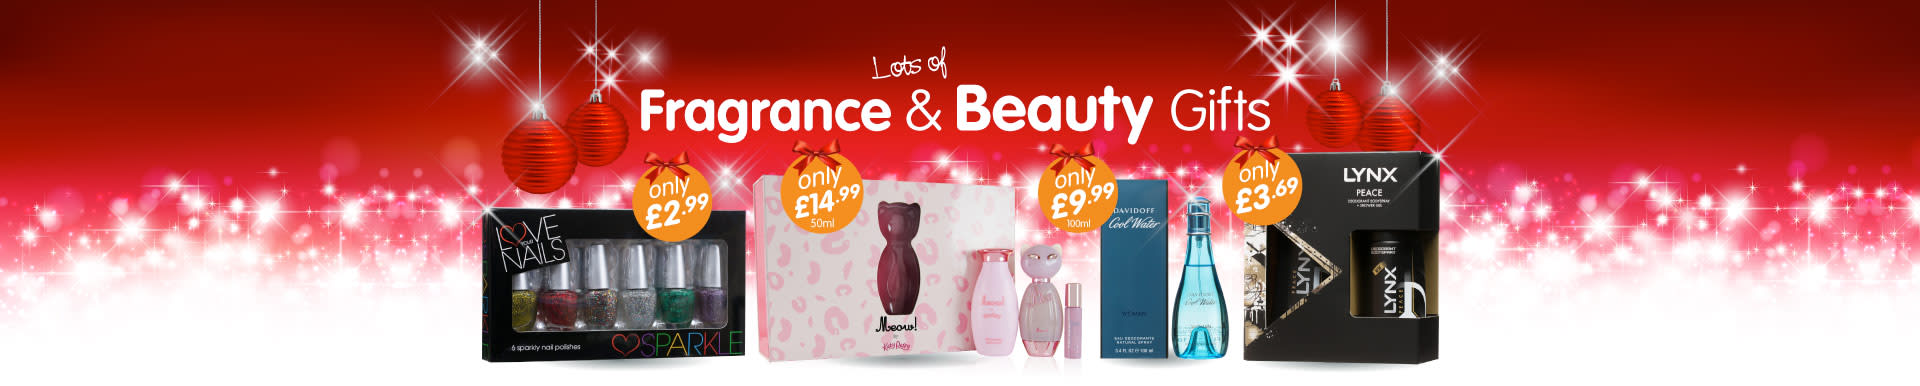 Lots of Fragrance & Beauty Gifts available from B&M Stores.